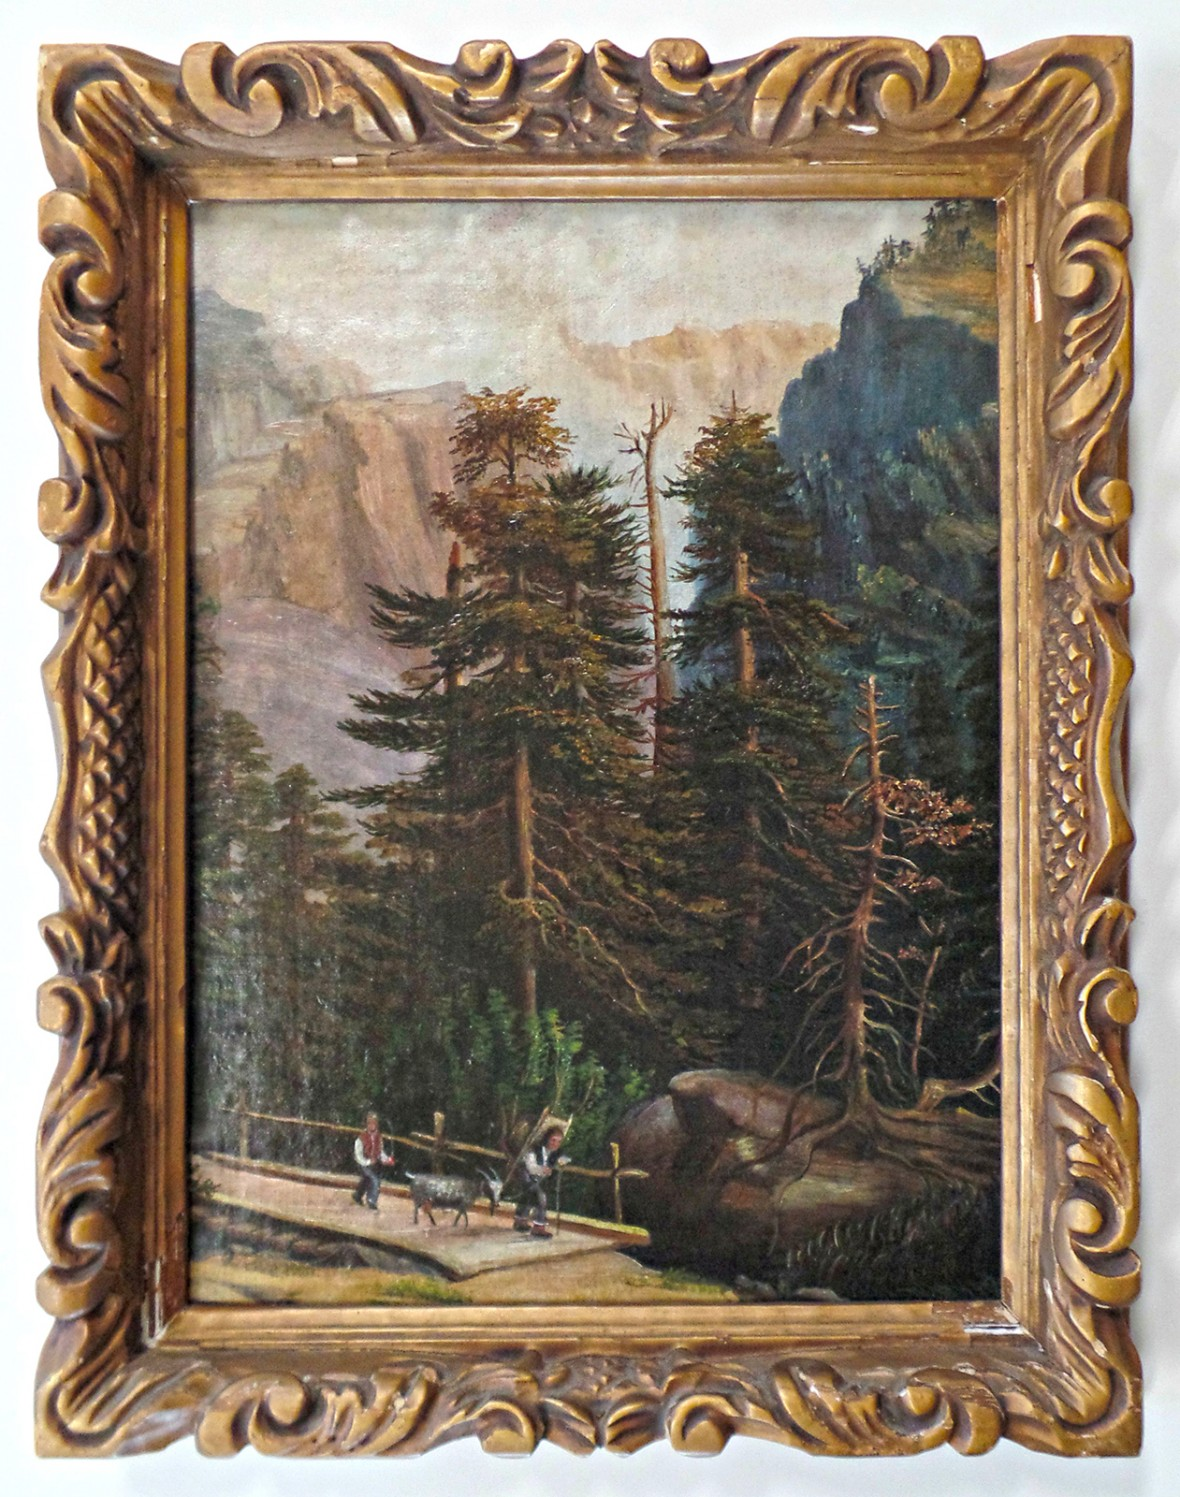 Framed Painting - Framing Art - Rose City Framemakers - Sparta NJ